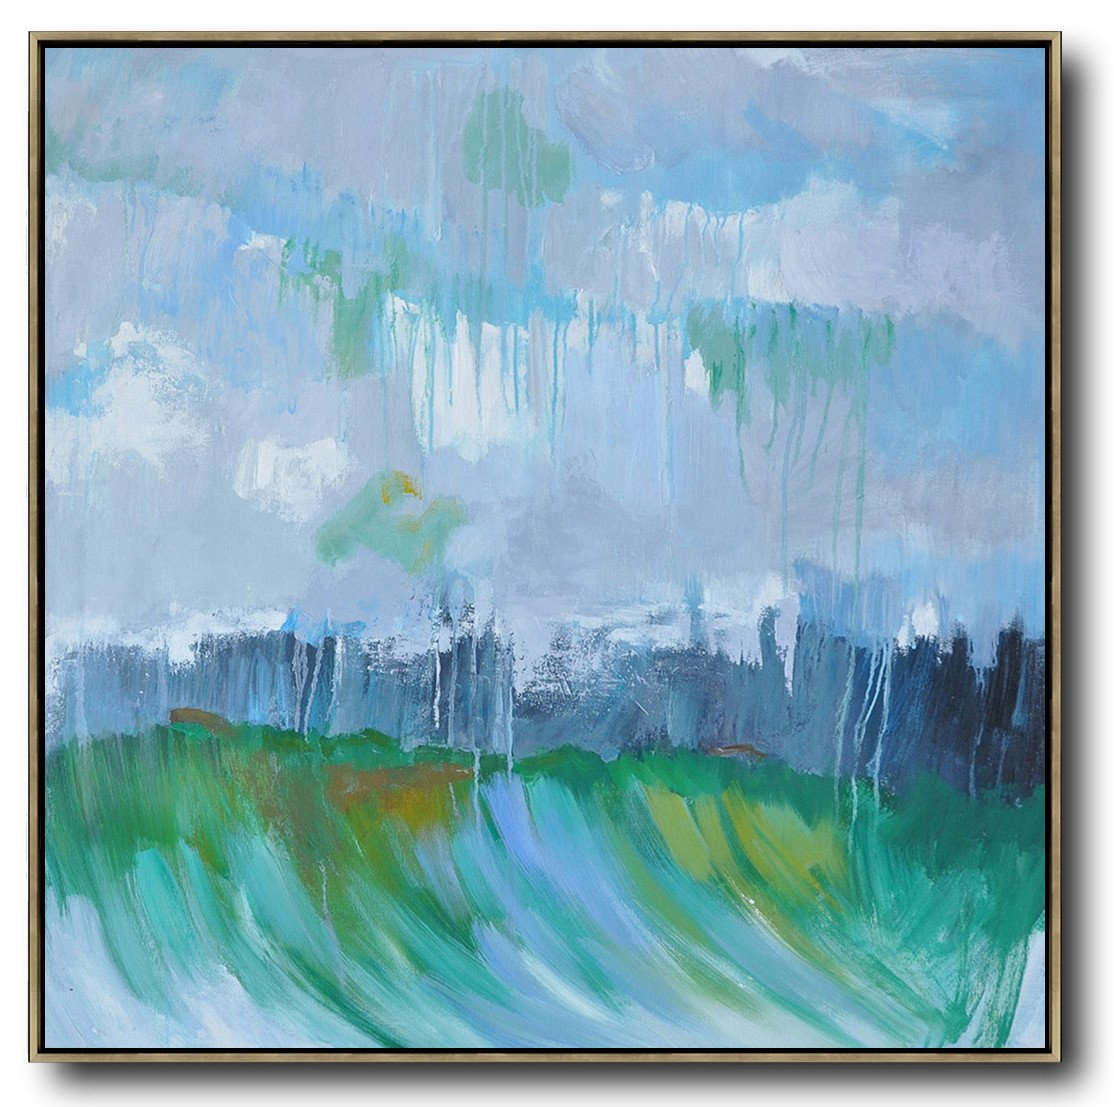 Large Contemporary Art Acrylic Painting,Abstract Landscape Oil Painting,Modern Wall Art,Purple Grey,Dark Blue,White,Green.etc